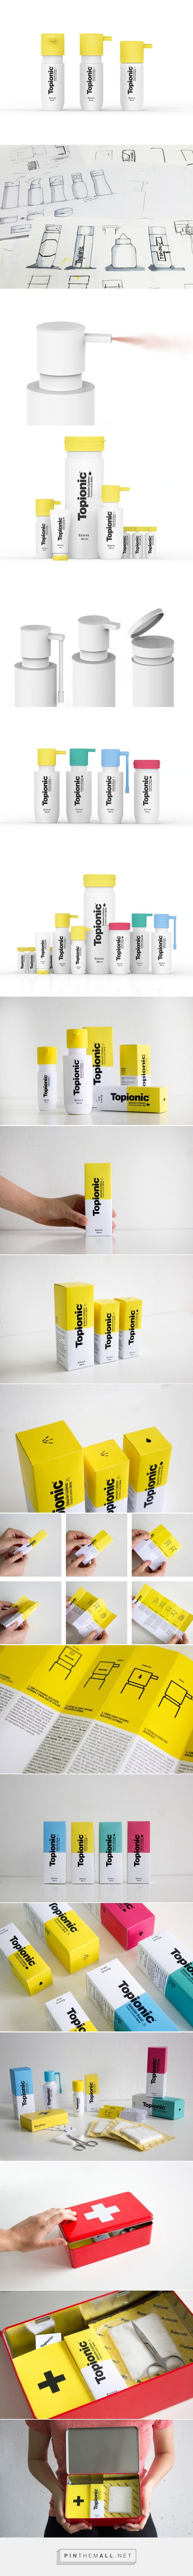 Topionic - student concept disinfectant #packaging designed by Barbara Gonzalez, Laura Planas, Mireia Ordeix, Laura Aguilar Casado